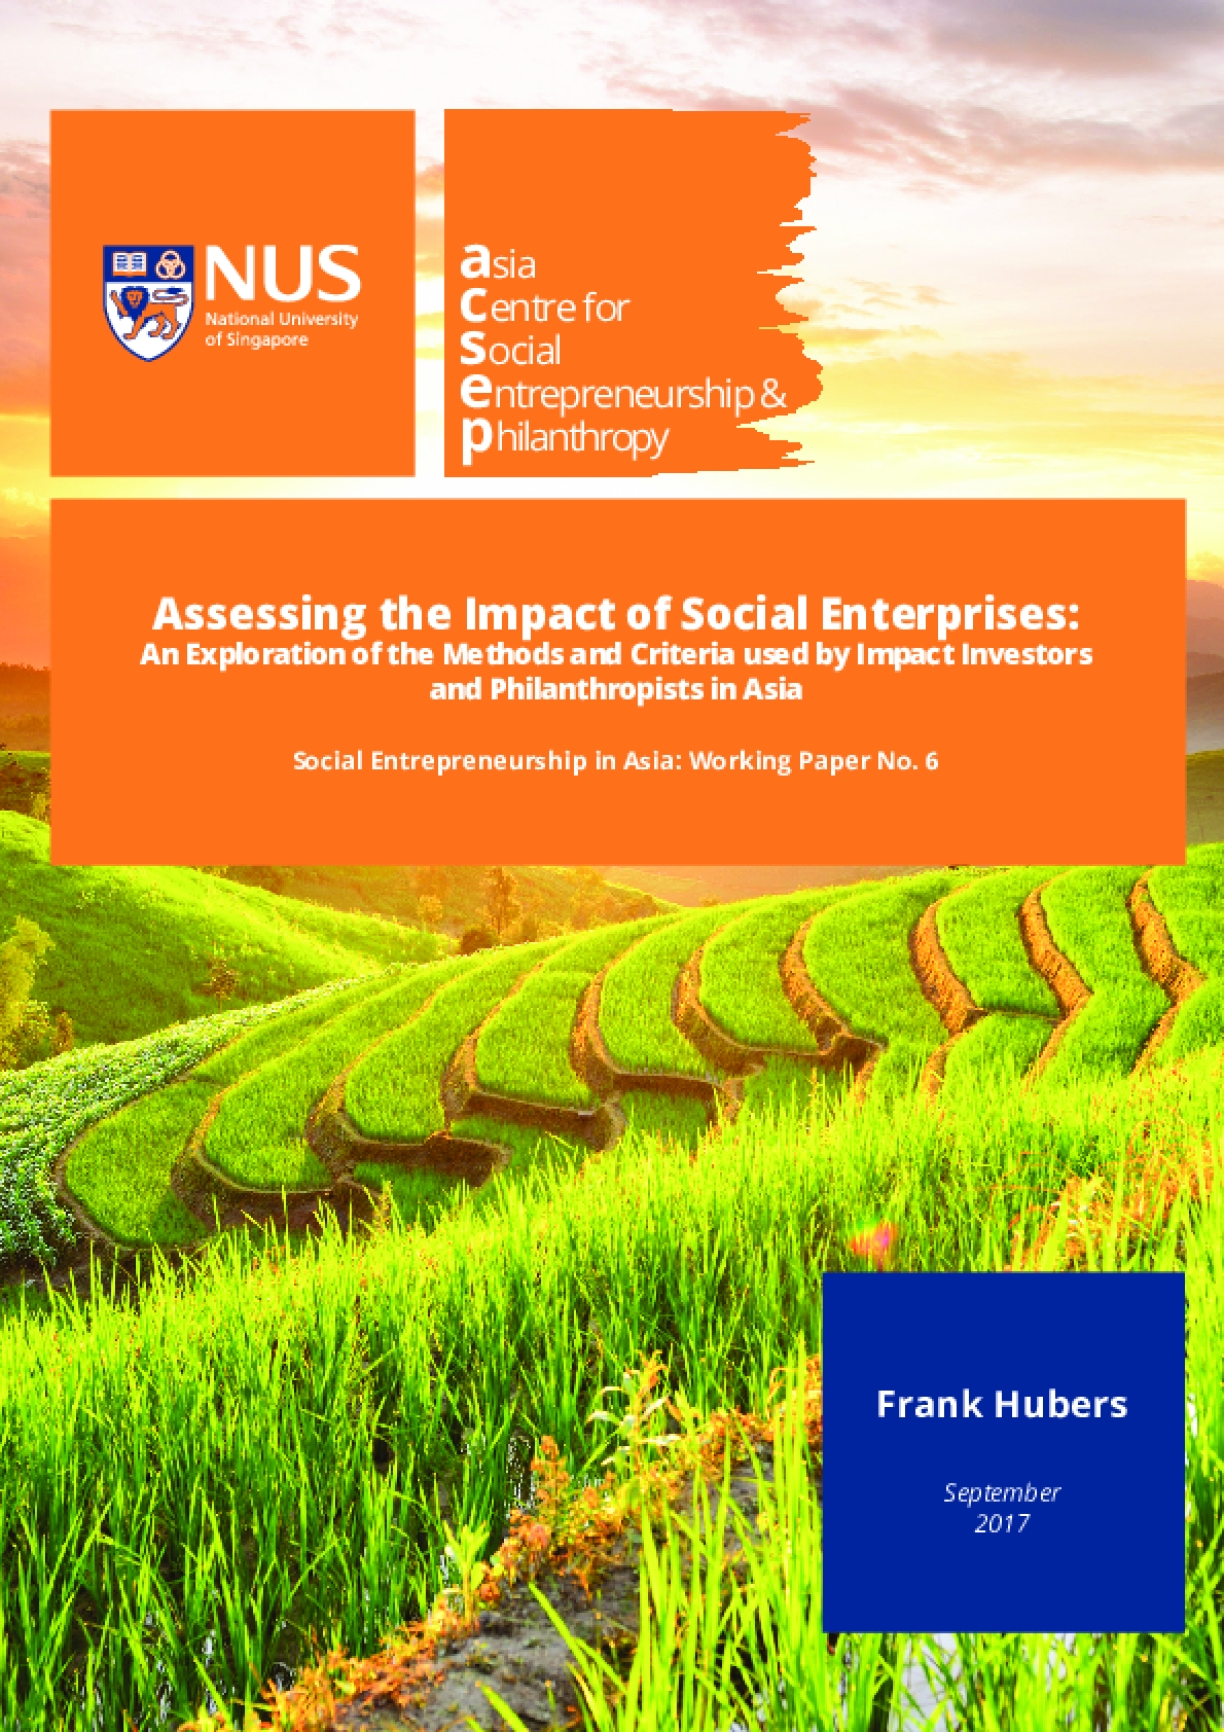 Assessing the Impact of Social Enterprises: An Exploration of the Methods and Criteria used by Impact Investors and Philanthropists in Asia - Social Entrepreneurship in Asia: Working Paper 6